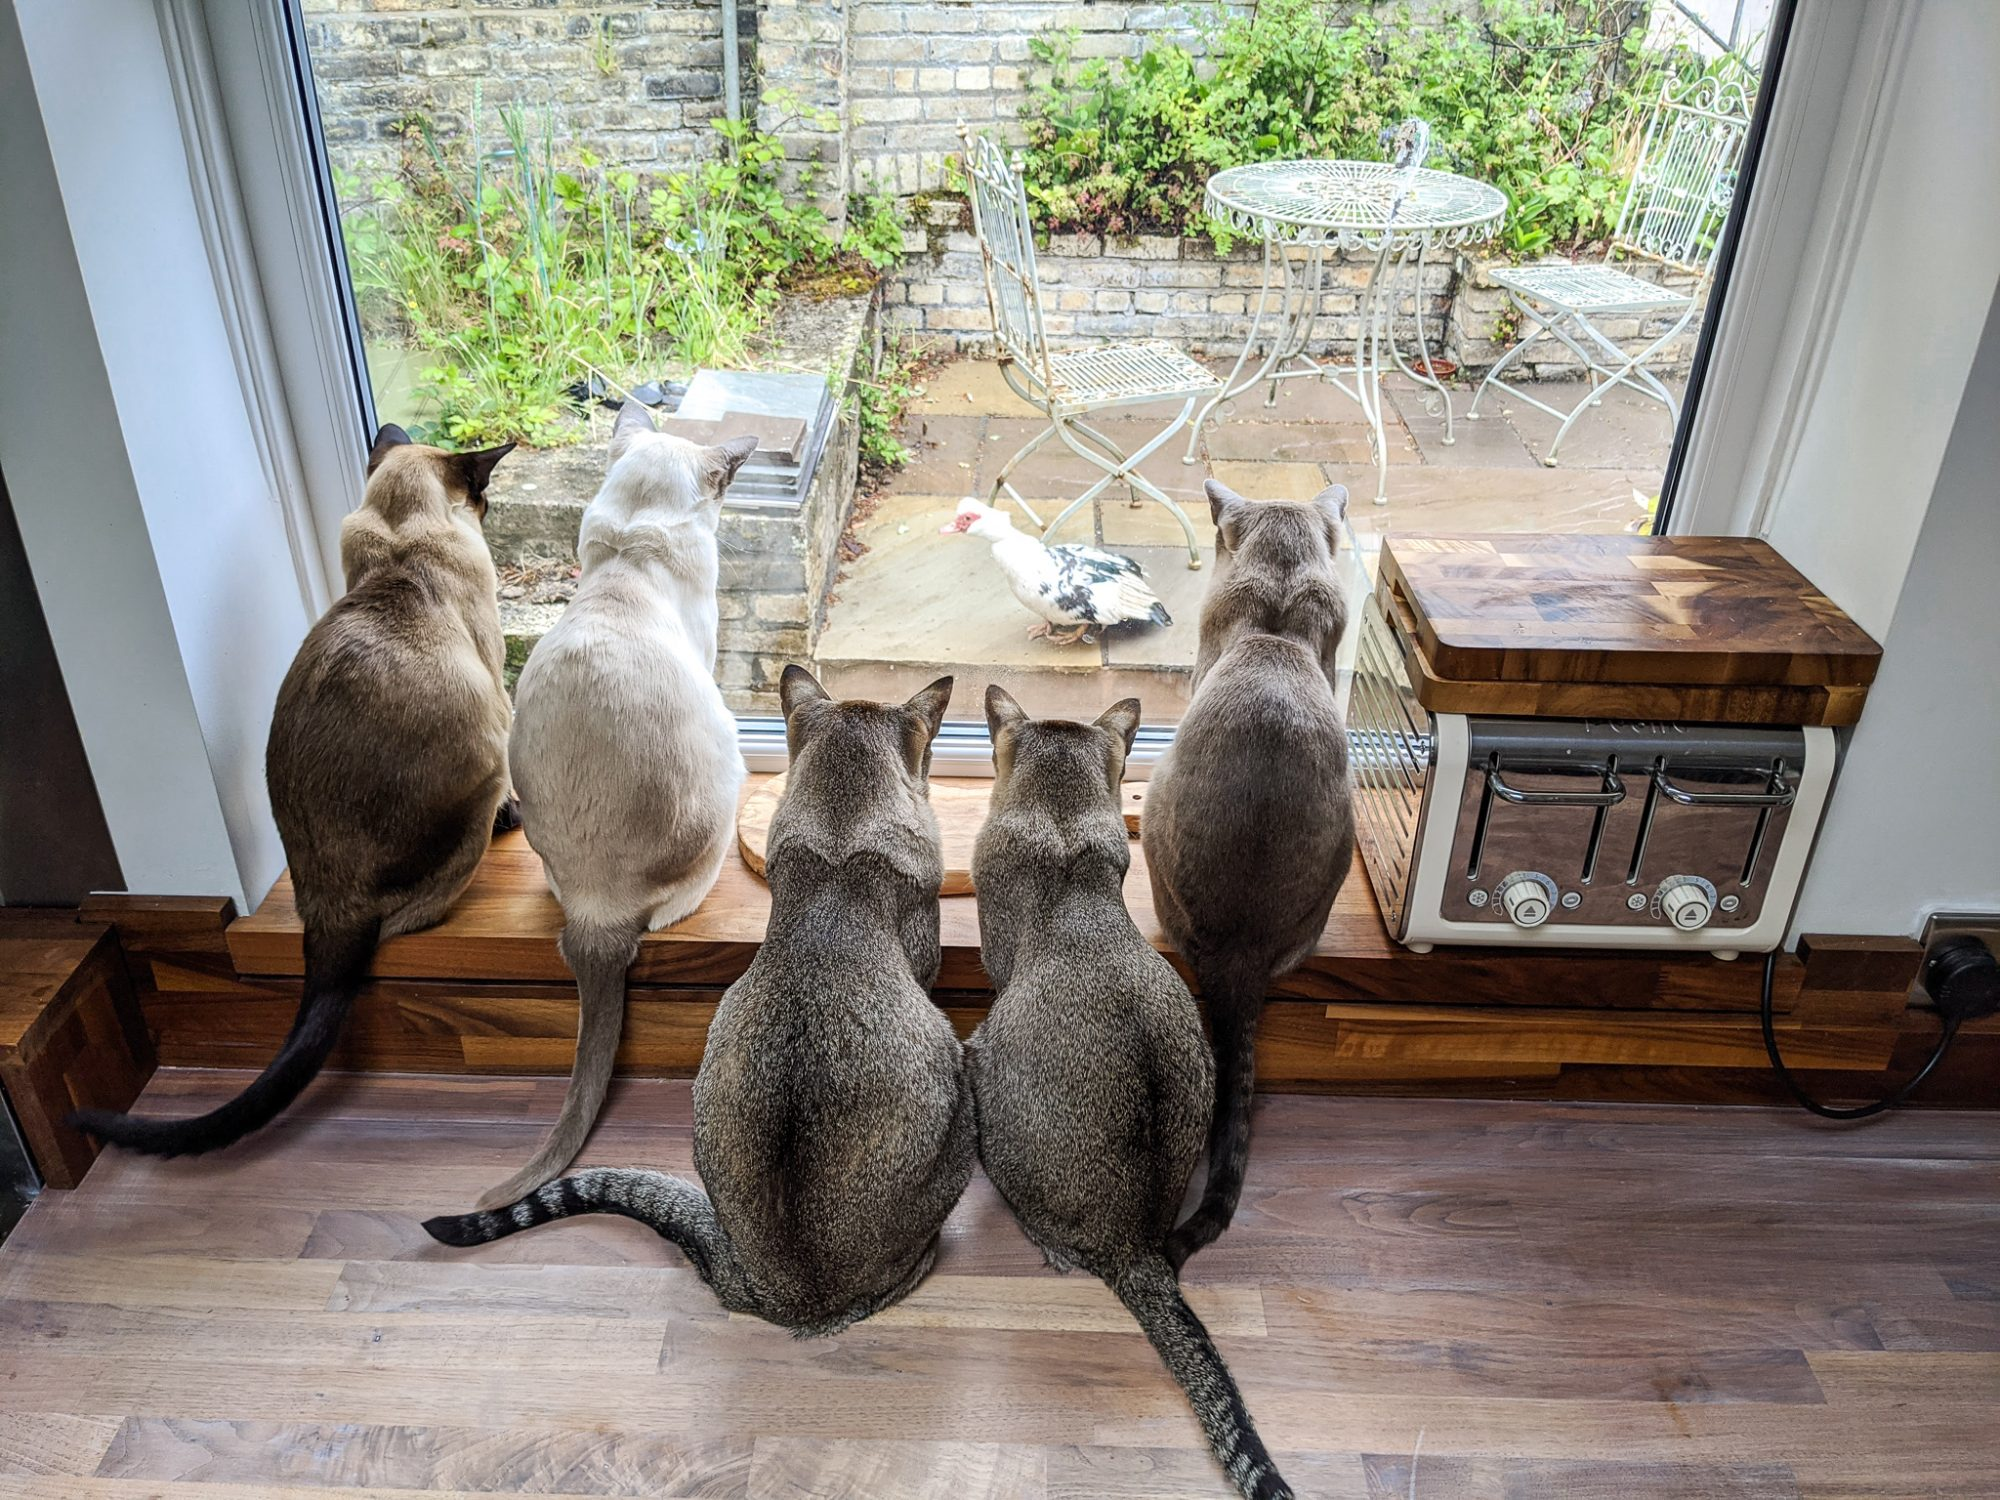 Cats watch chicken out window